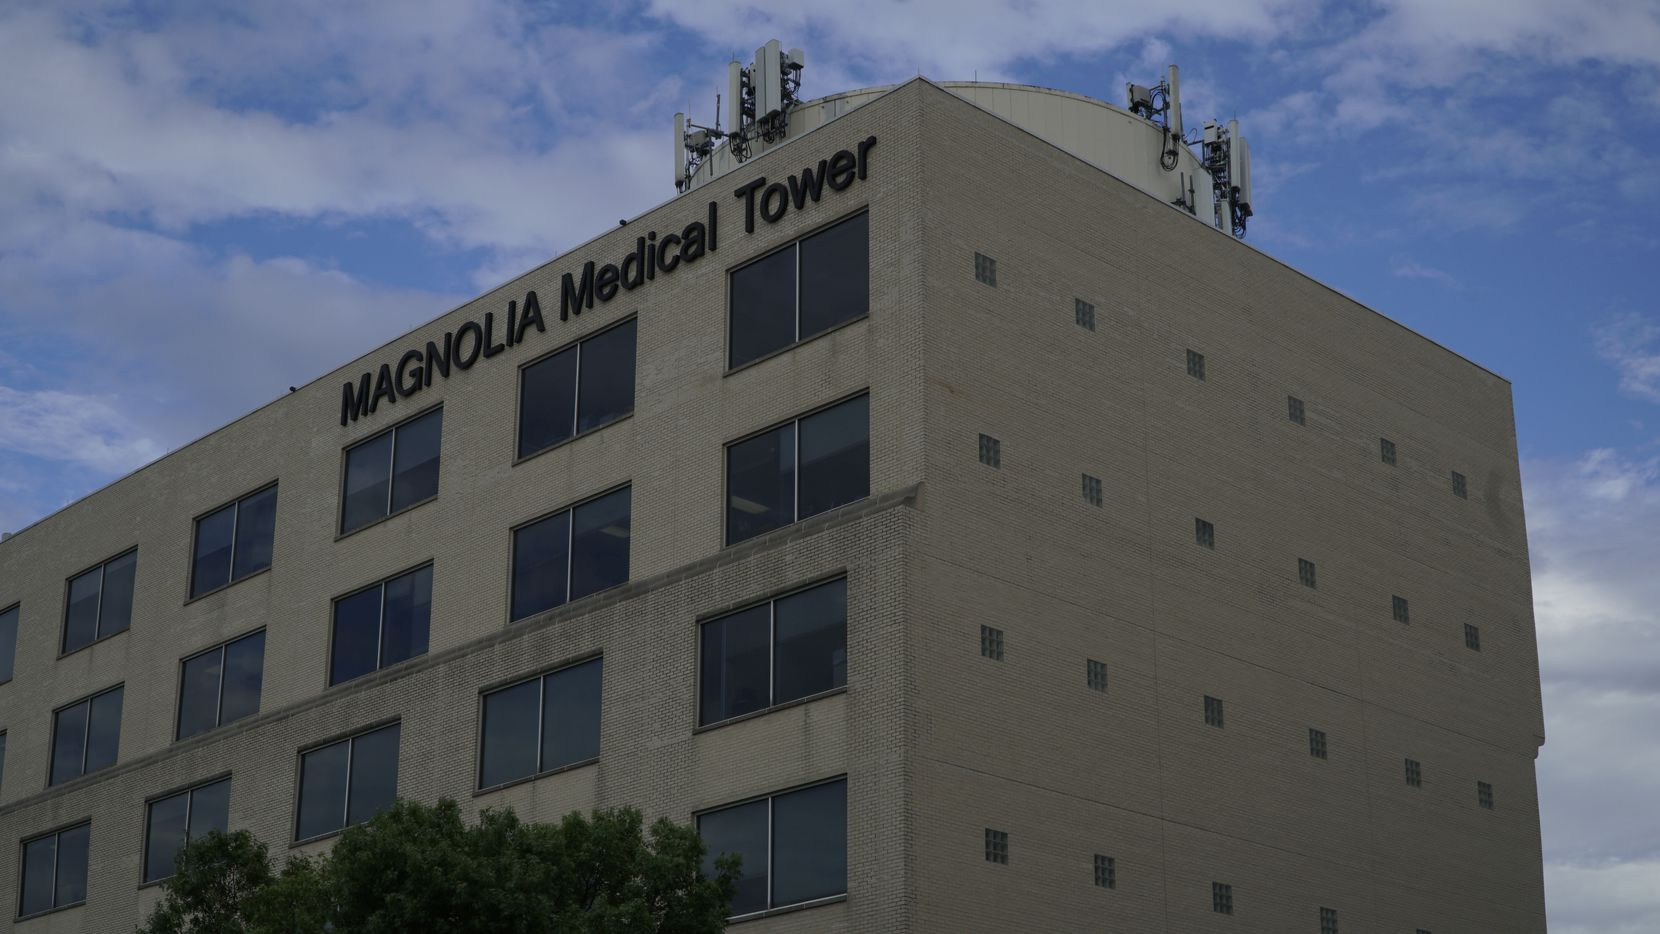 Magnolia Medical Tower in Fort Worth, Texas on Wednesday July 29, 2020.